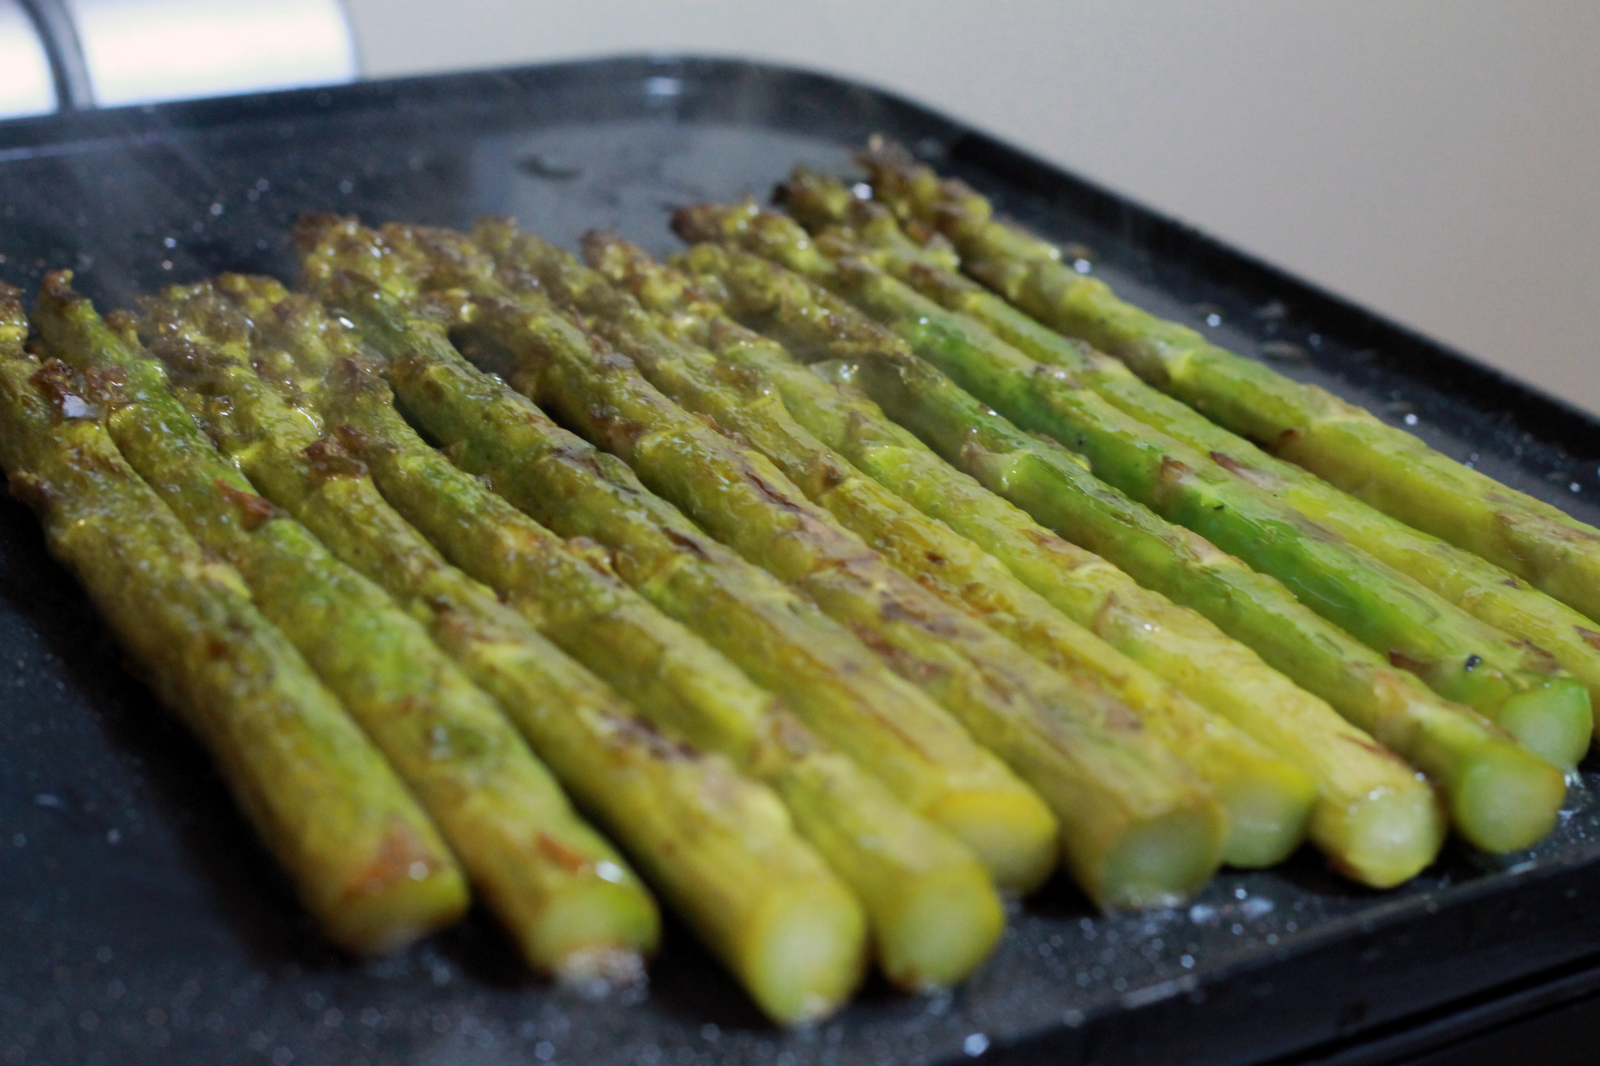 Cooking The Asparagus €� 5 Minutes